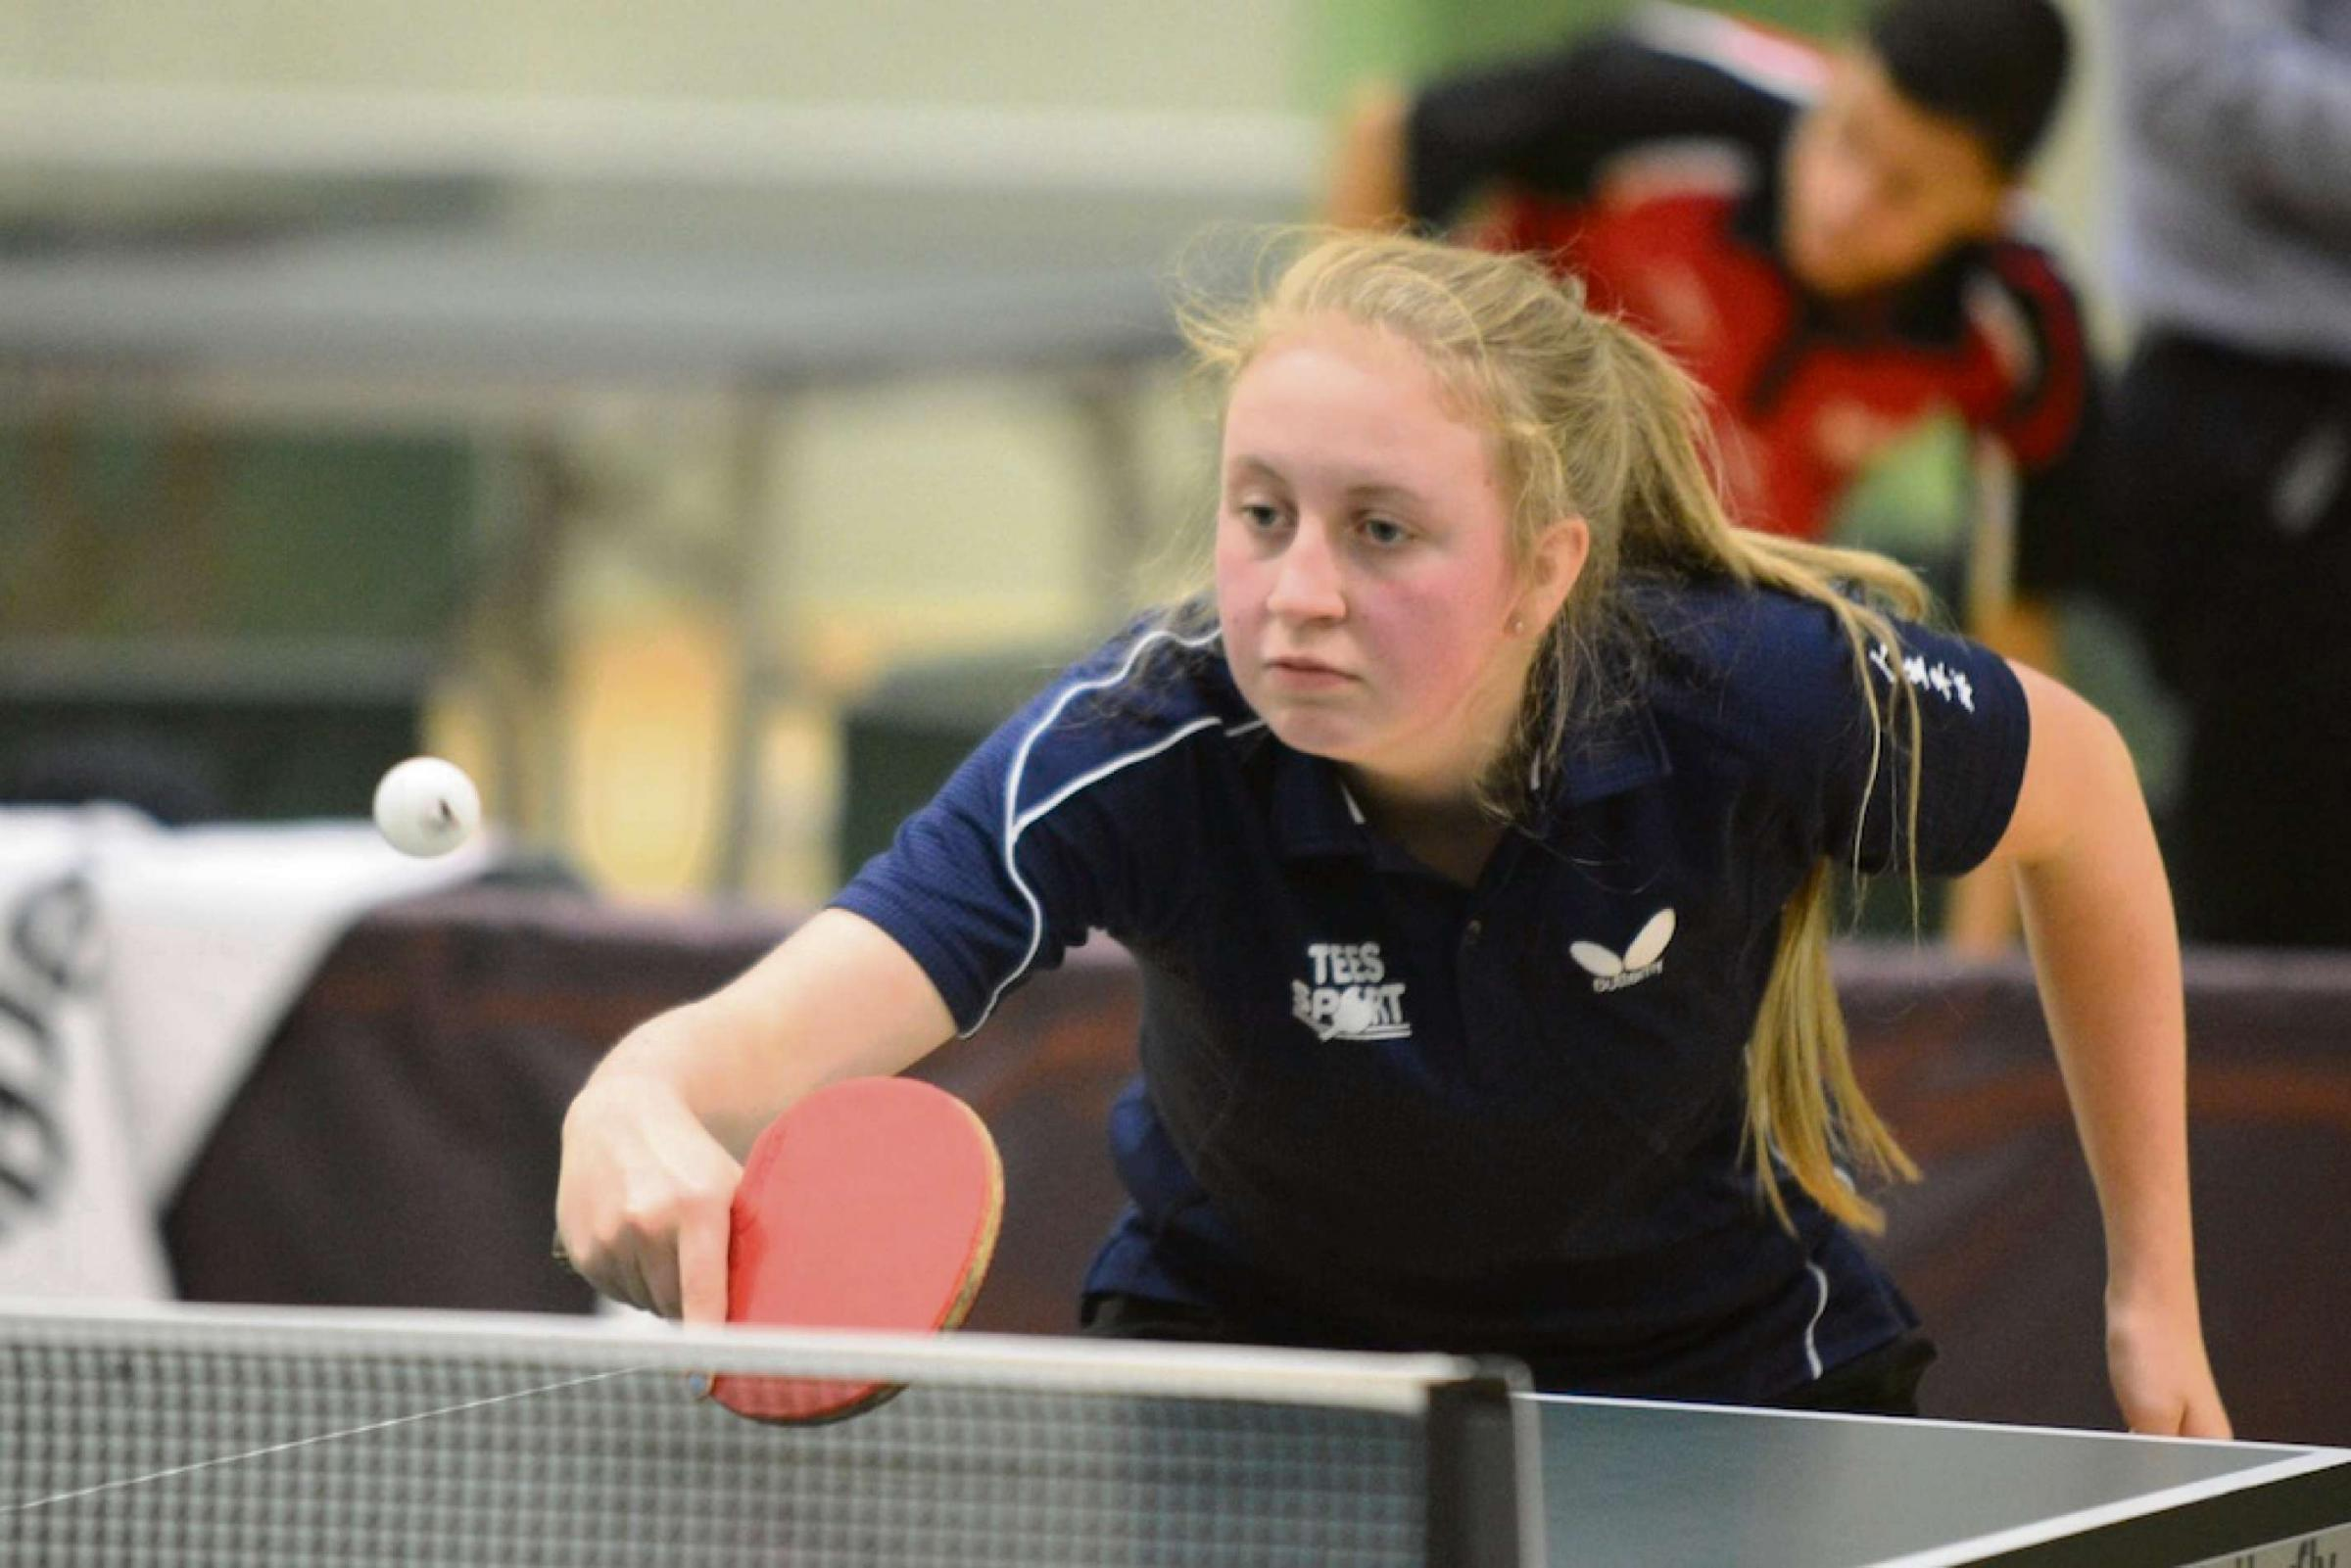 Ilkley table tennis starlet Kate to coach younger players